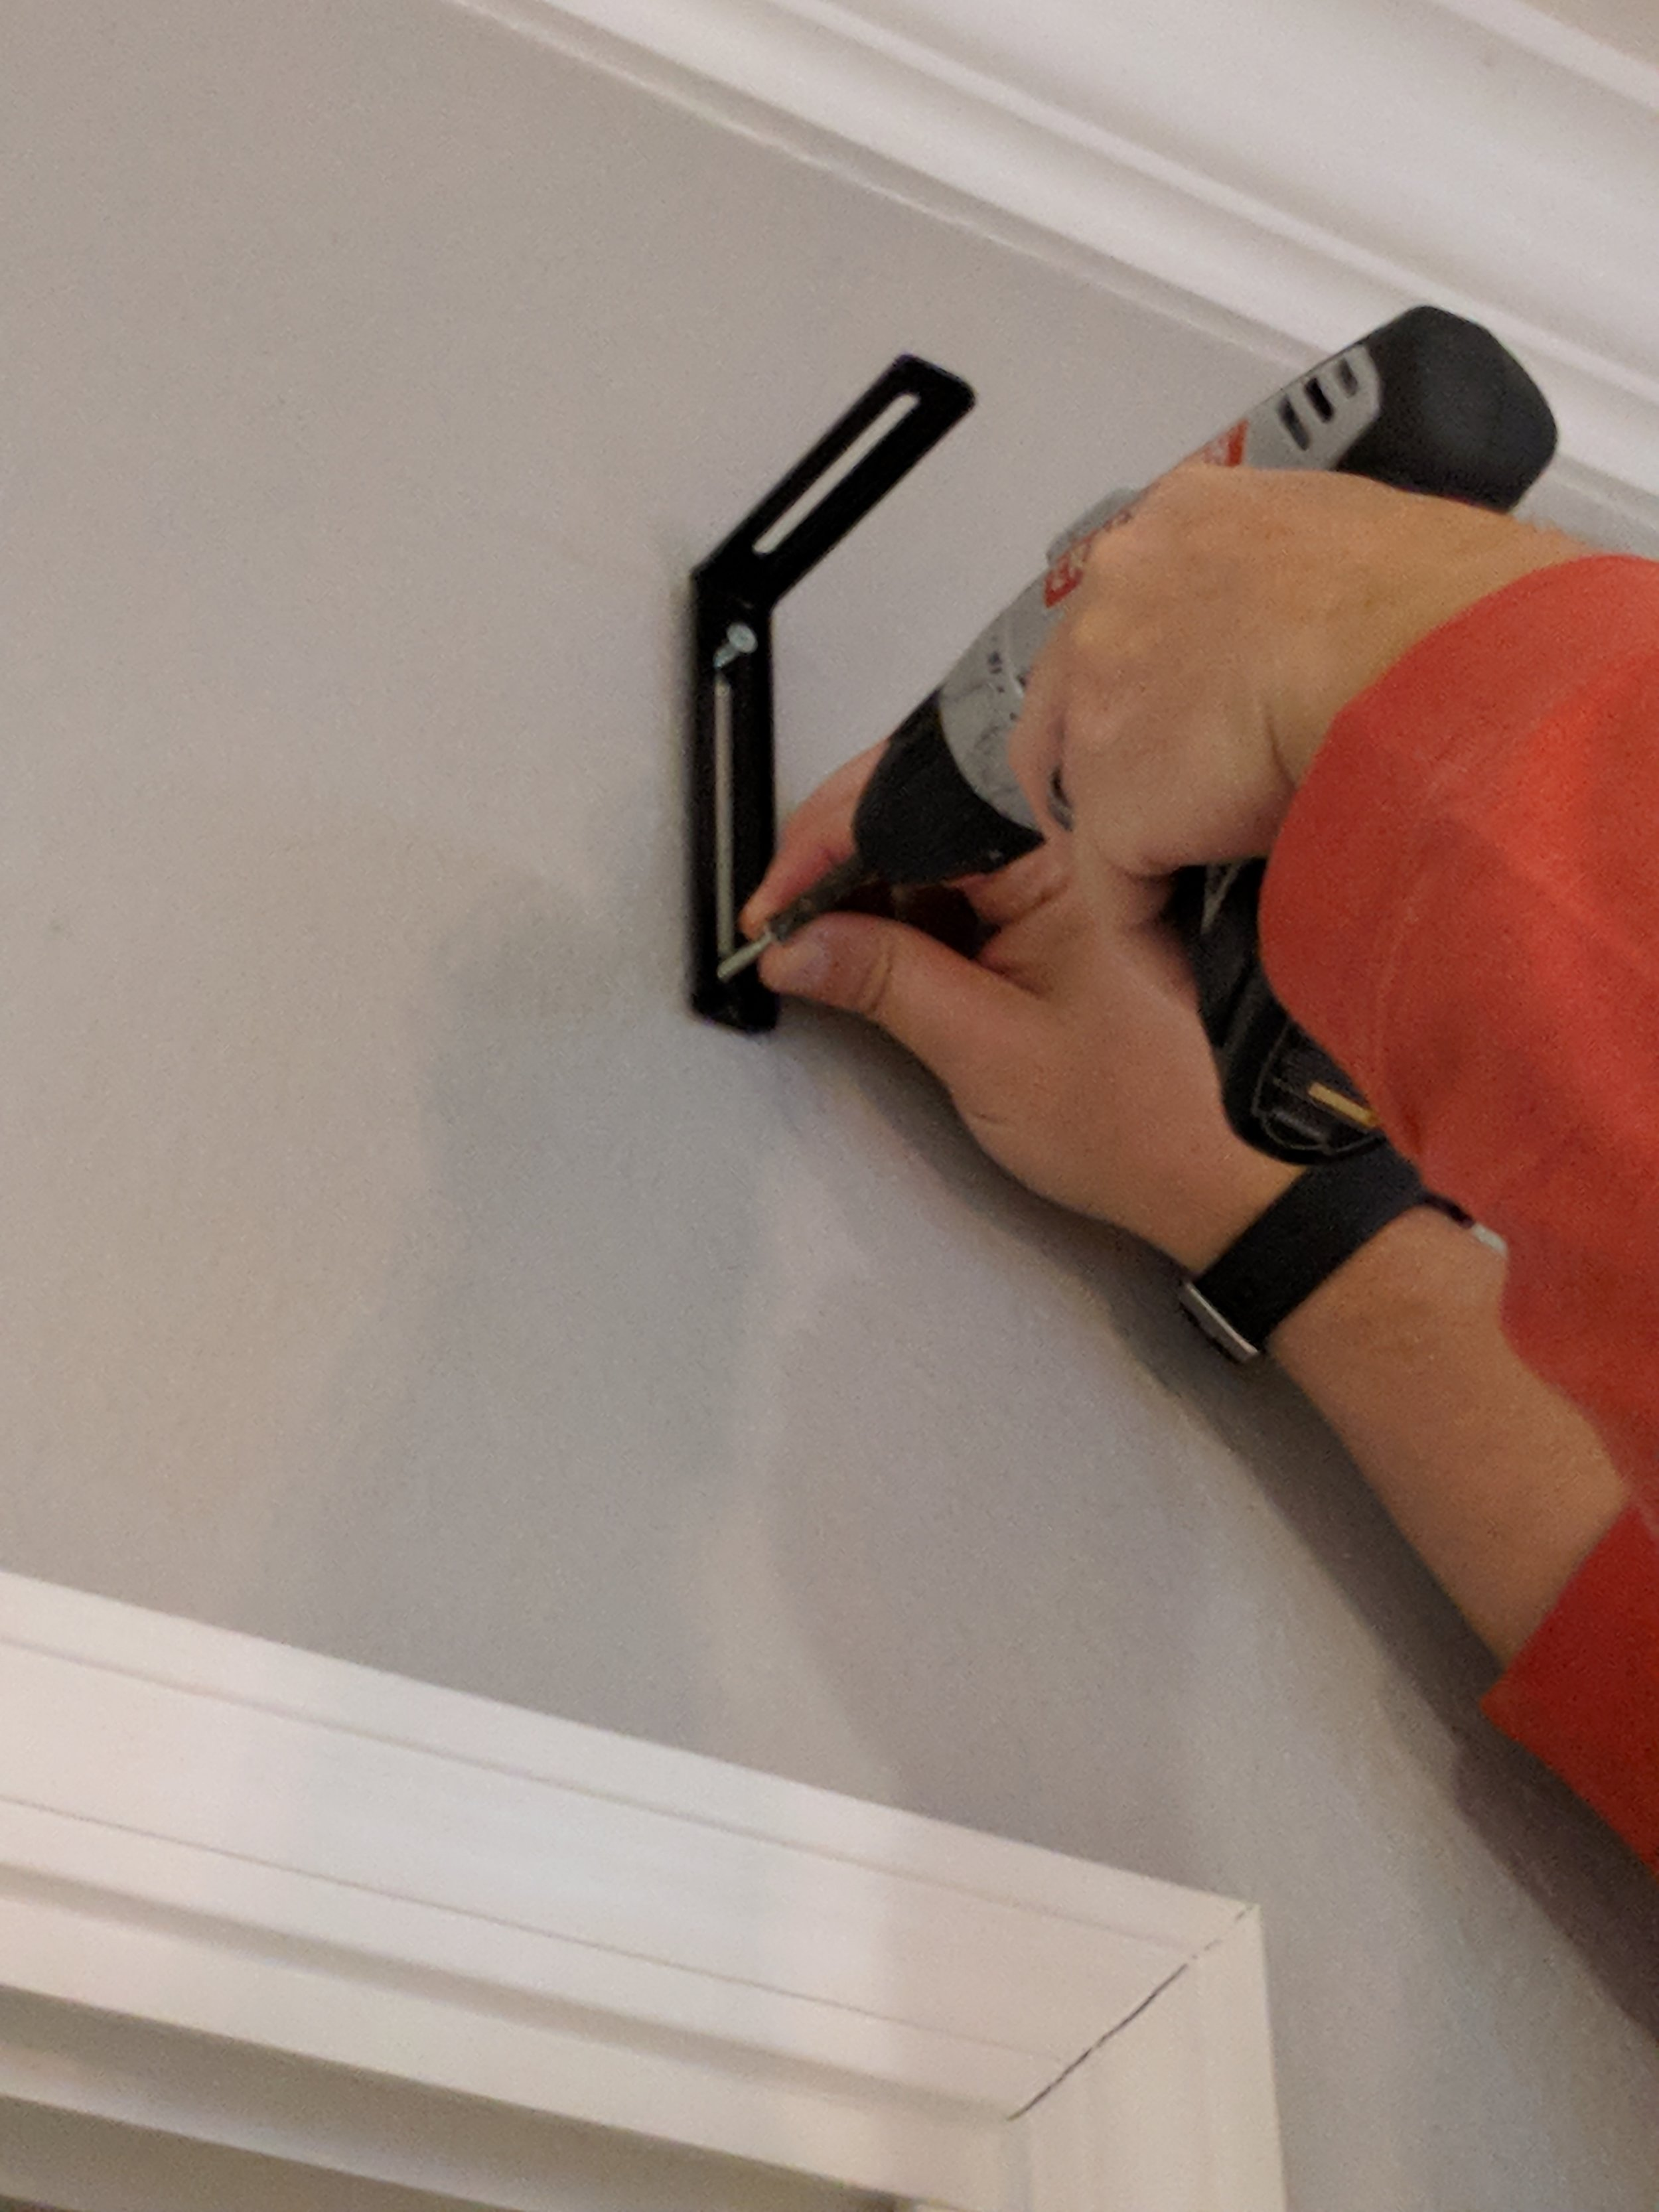 Attaching the wall bracket to the wall.